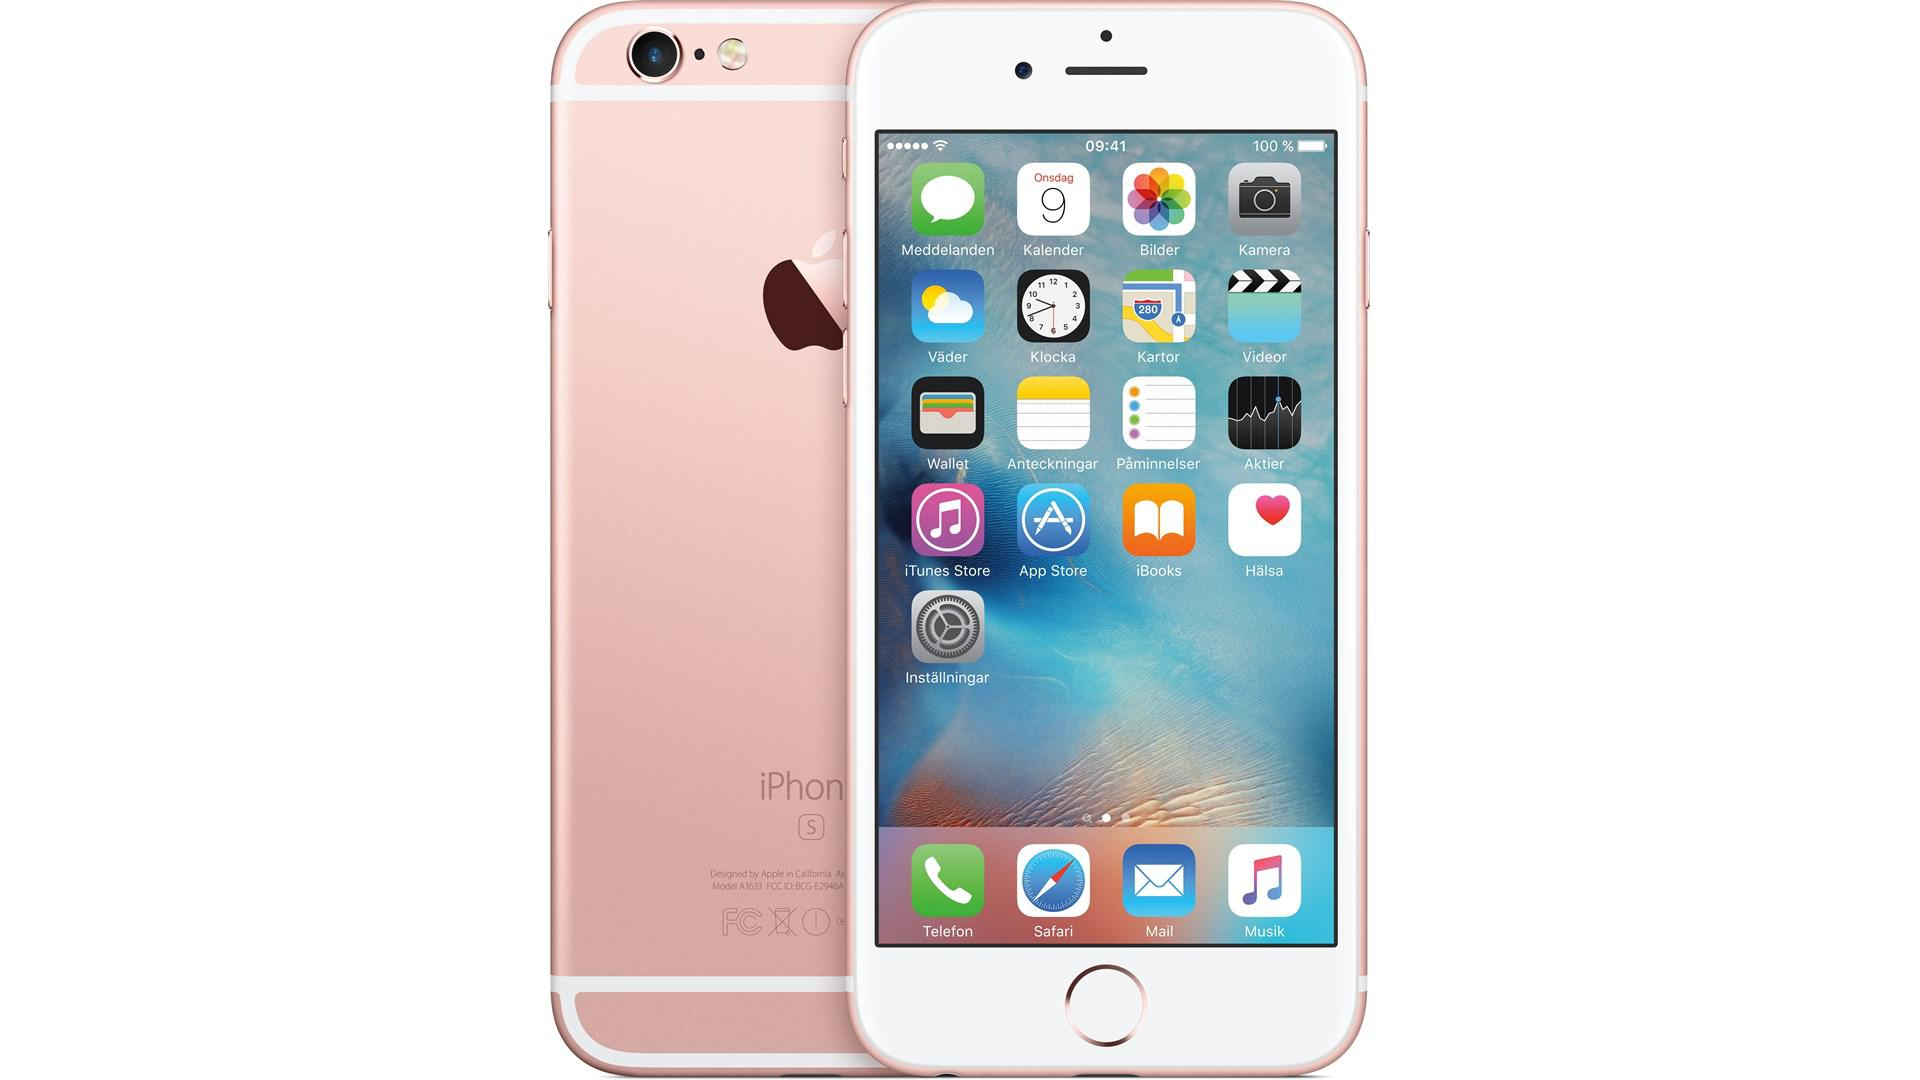 APPLE iPhone 6 S 32GB Rosa-Guld